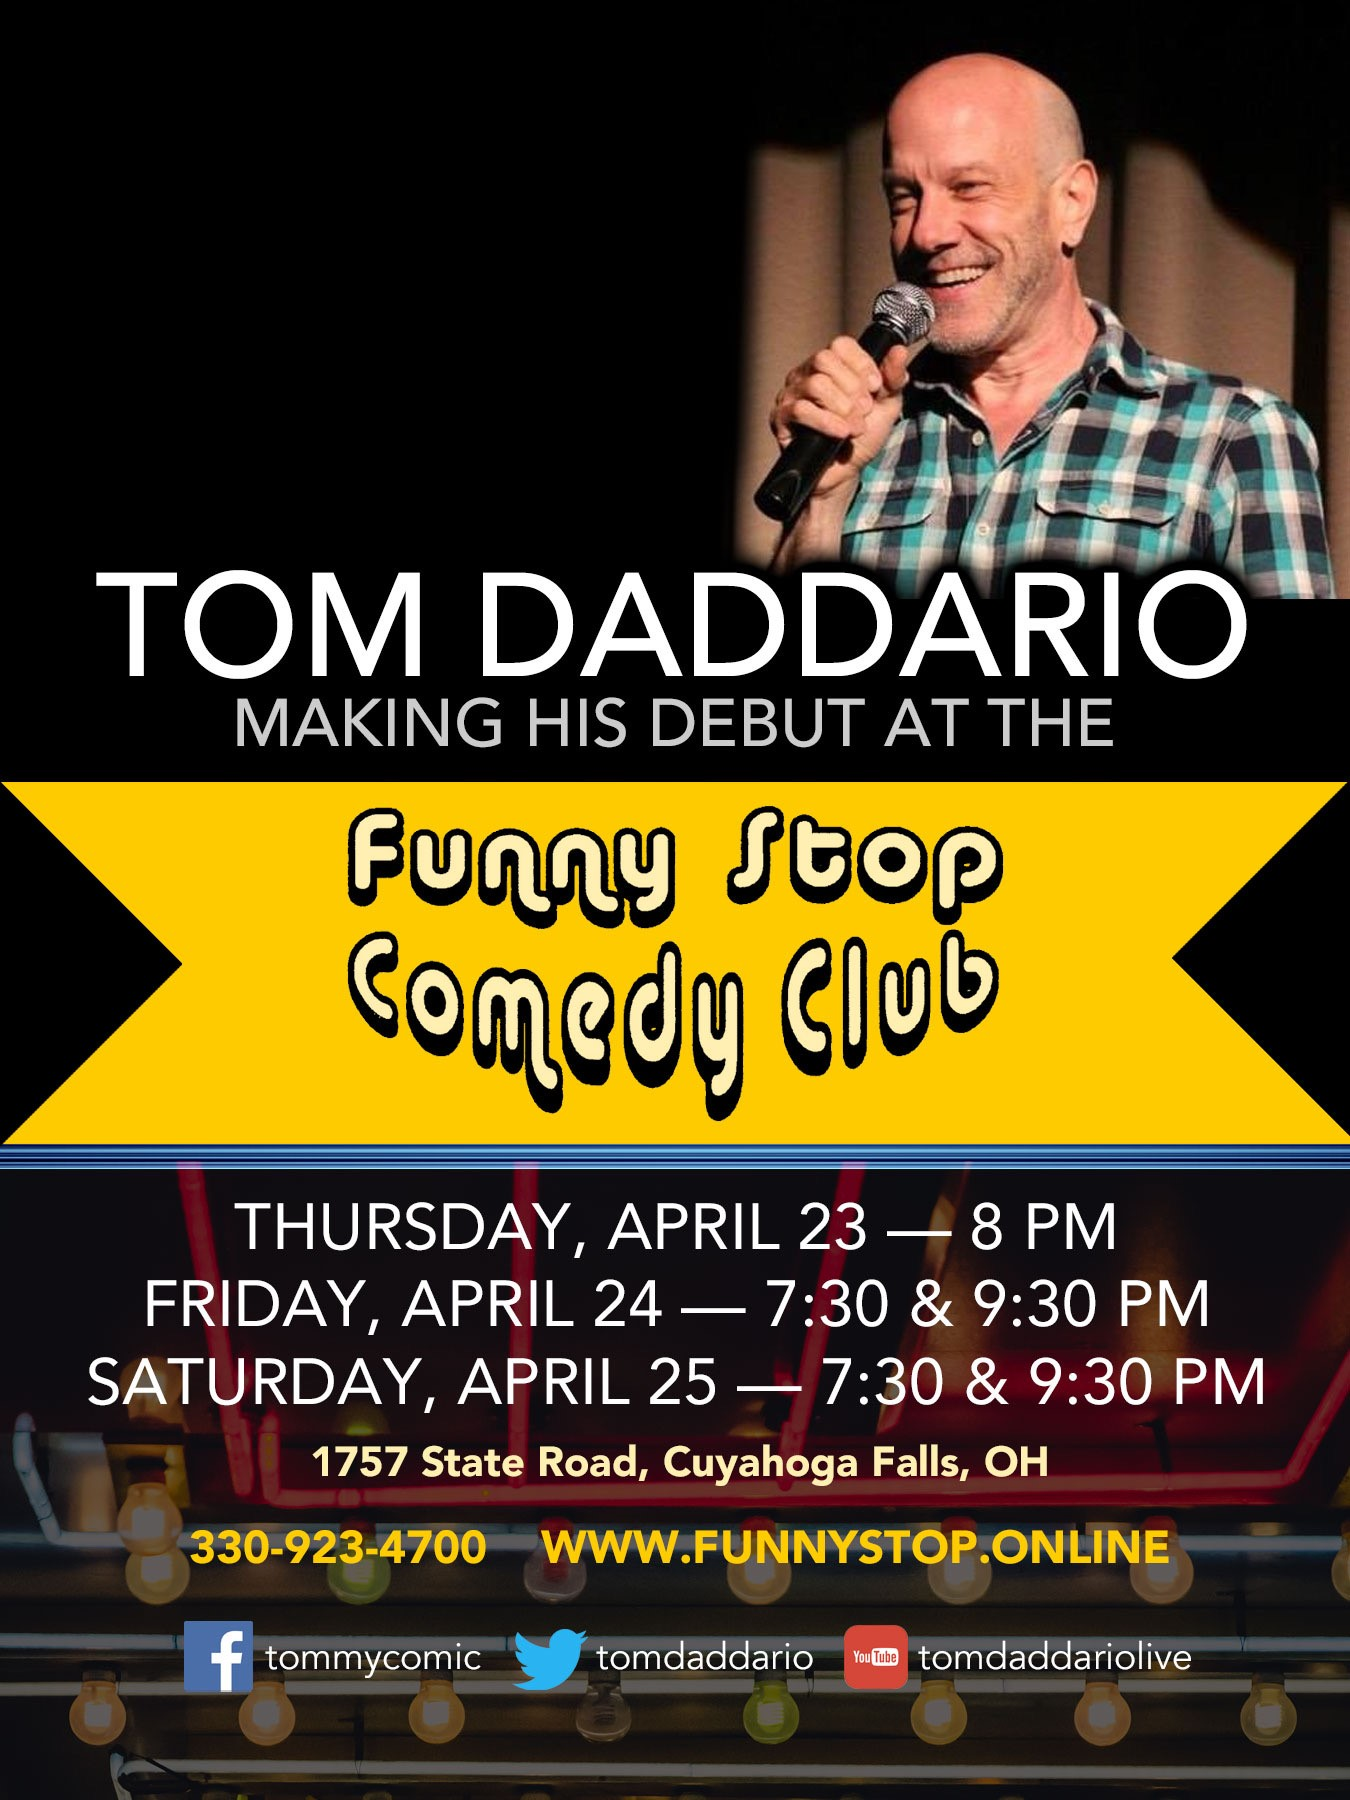 Tom Daddario 9:30 Show  on Apr 25, 21:30@Funny Stop Comedy Club - Buy tickets and Get information on Funny Stop funnystop.online